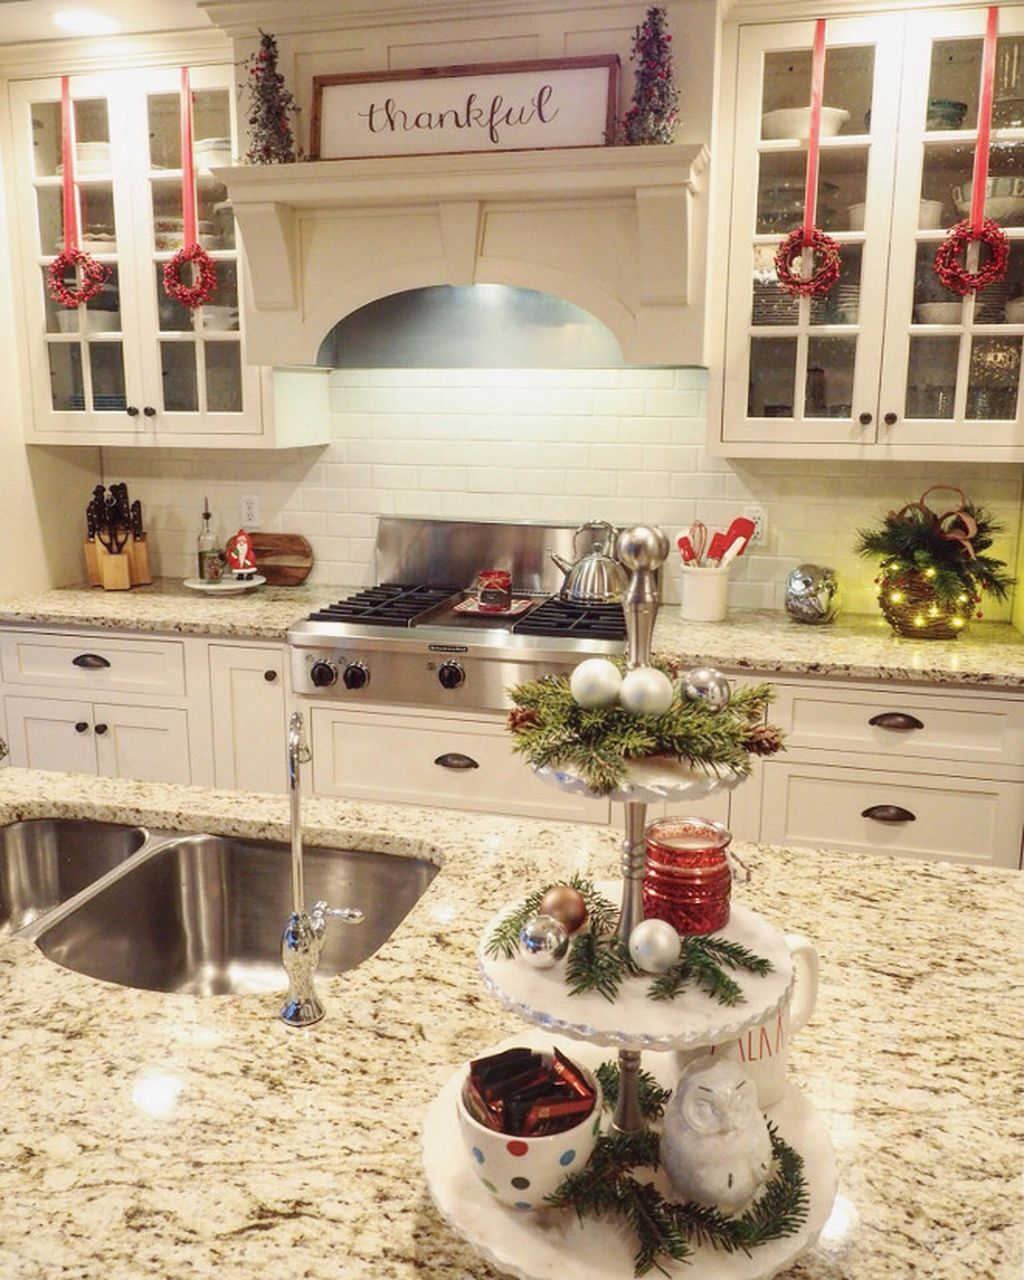 Kitchen Cabinet Christmas Decorating Ideas: Adorable Rustic Christmas Kitchen Decoration Ideas 67